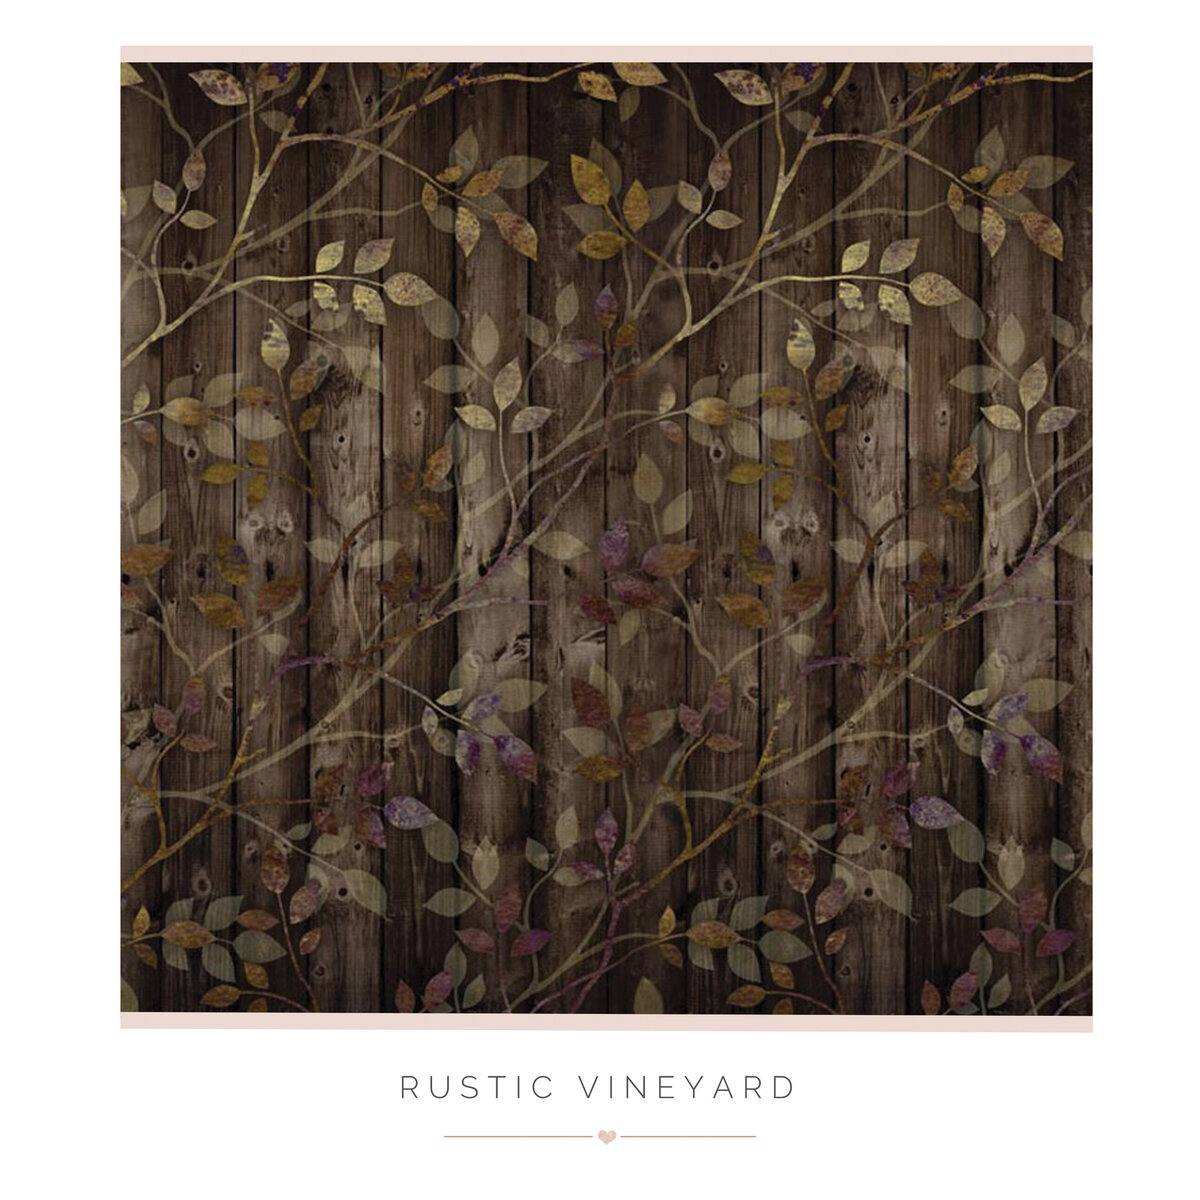 Rustic Vineyard